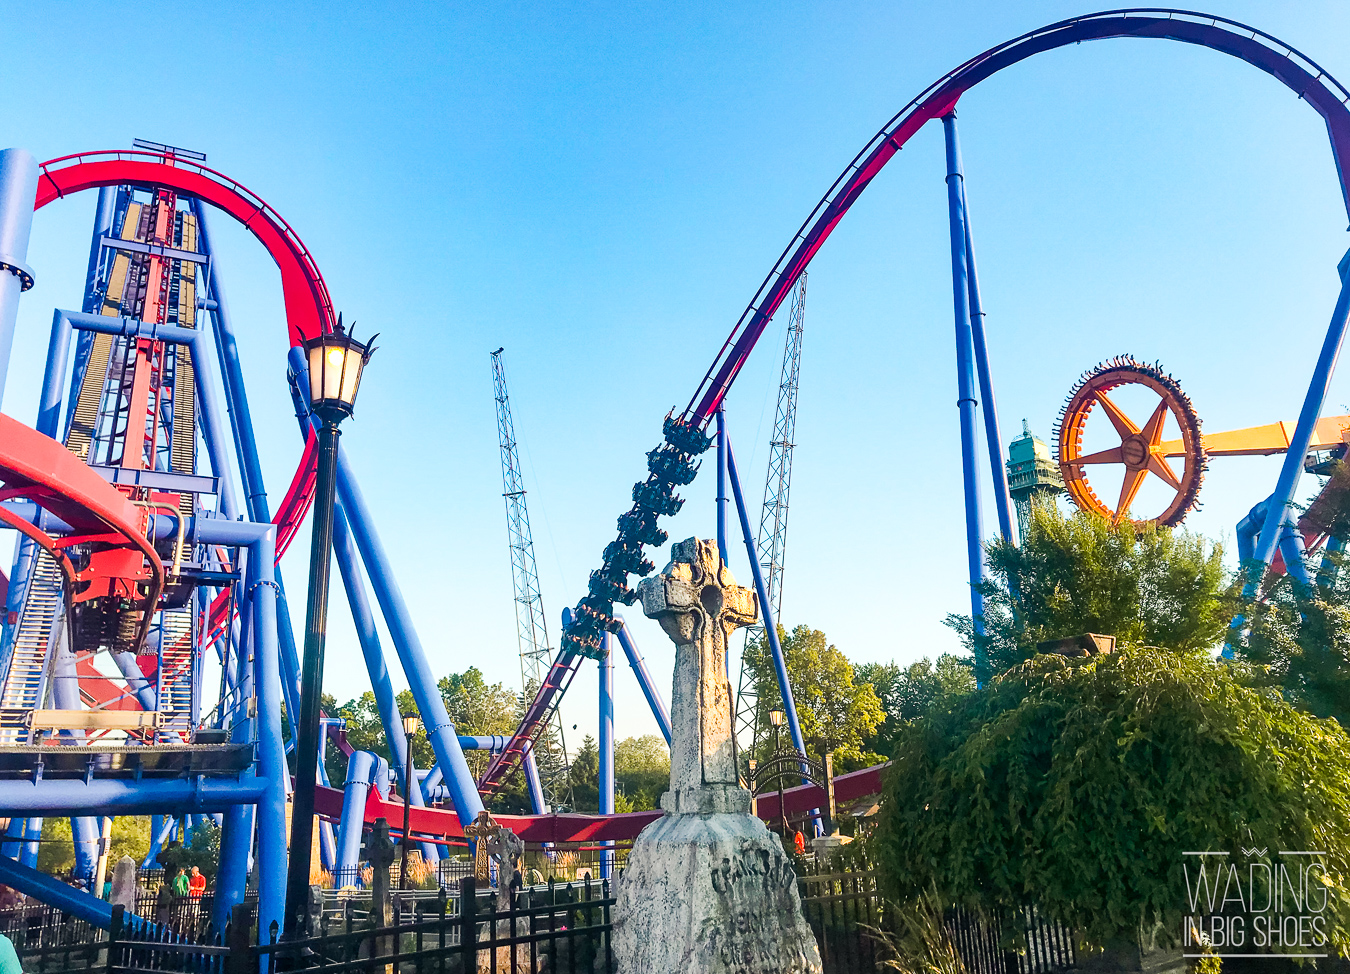 Wading in Big Shoes - Just How Scary Are The Roller Coasters at Kings Island? - Ride Guide & Review